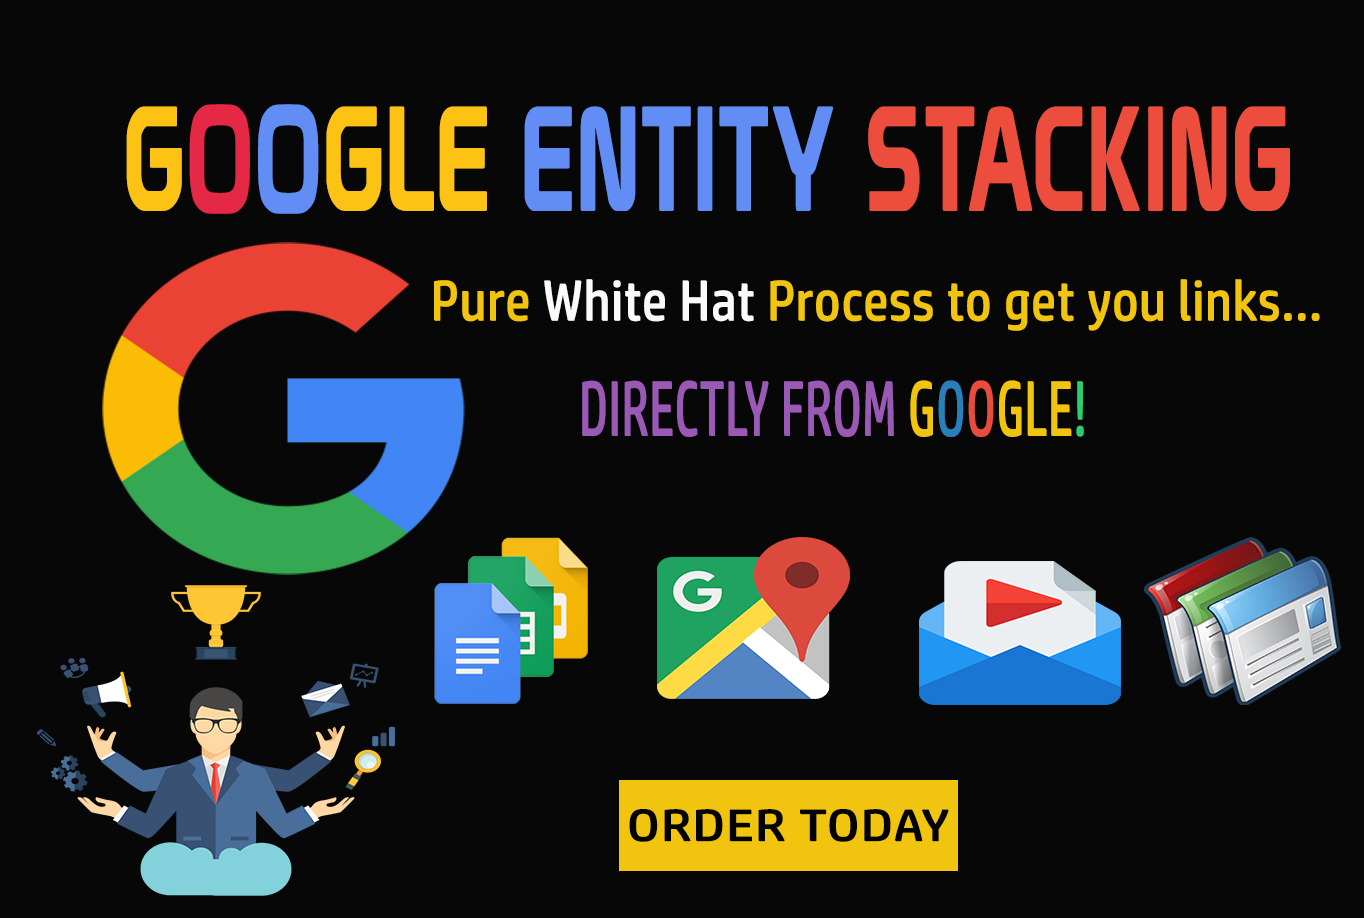 Google Entity Stack-GET POWERFUL LINKS FROM GOOGLE OWNED PROPERTIES